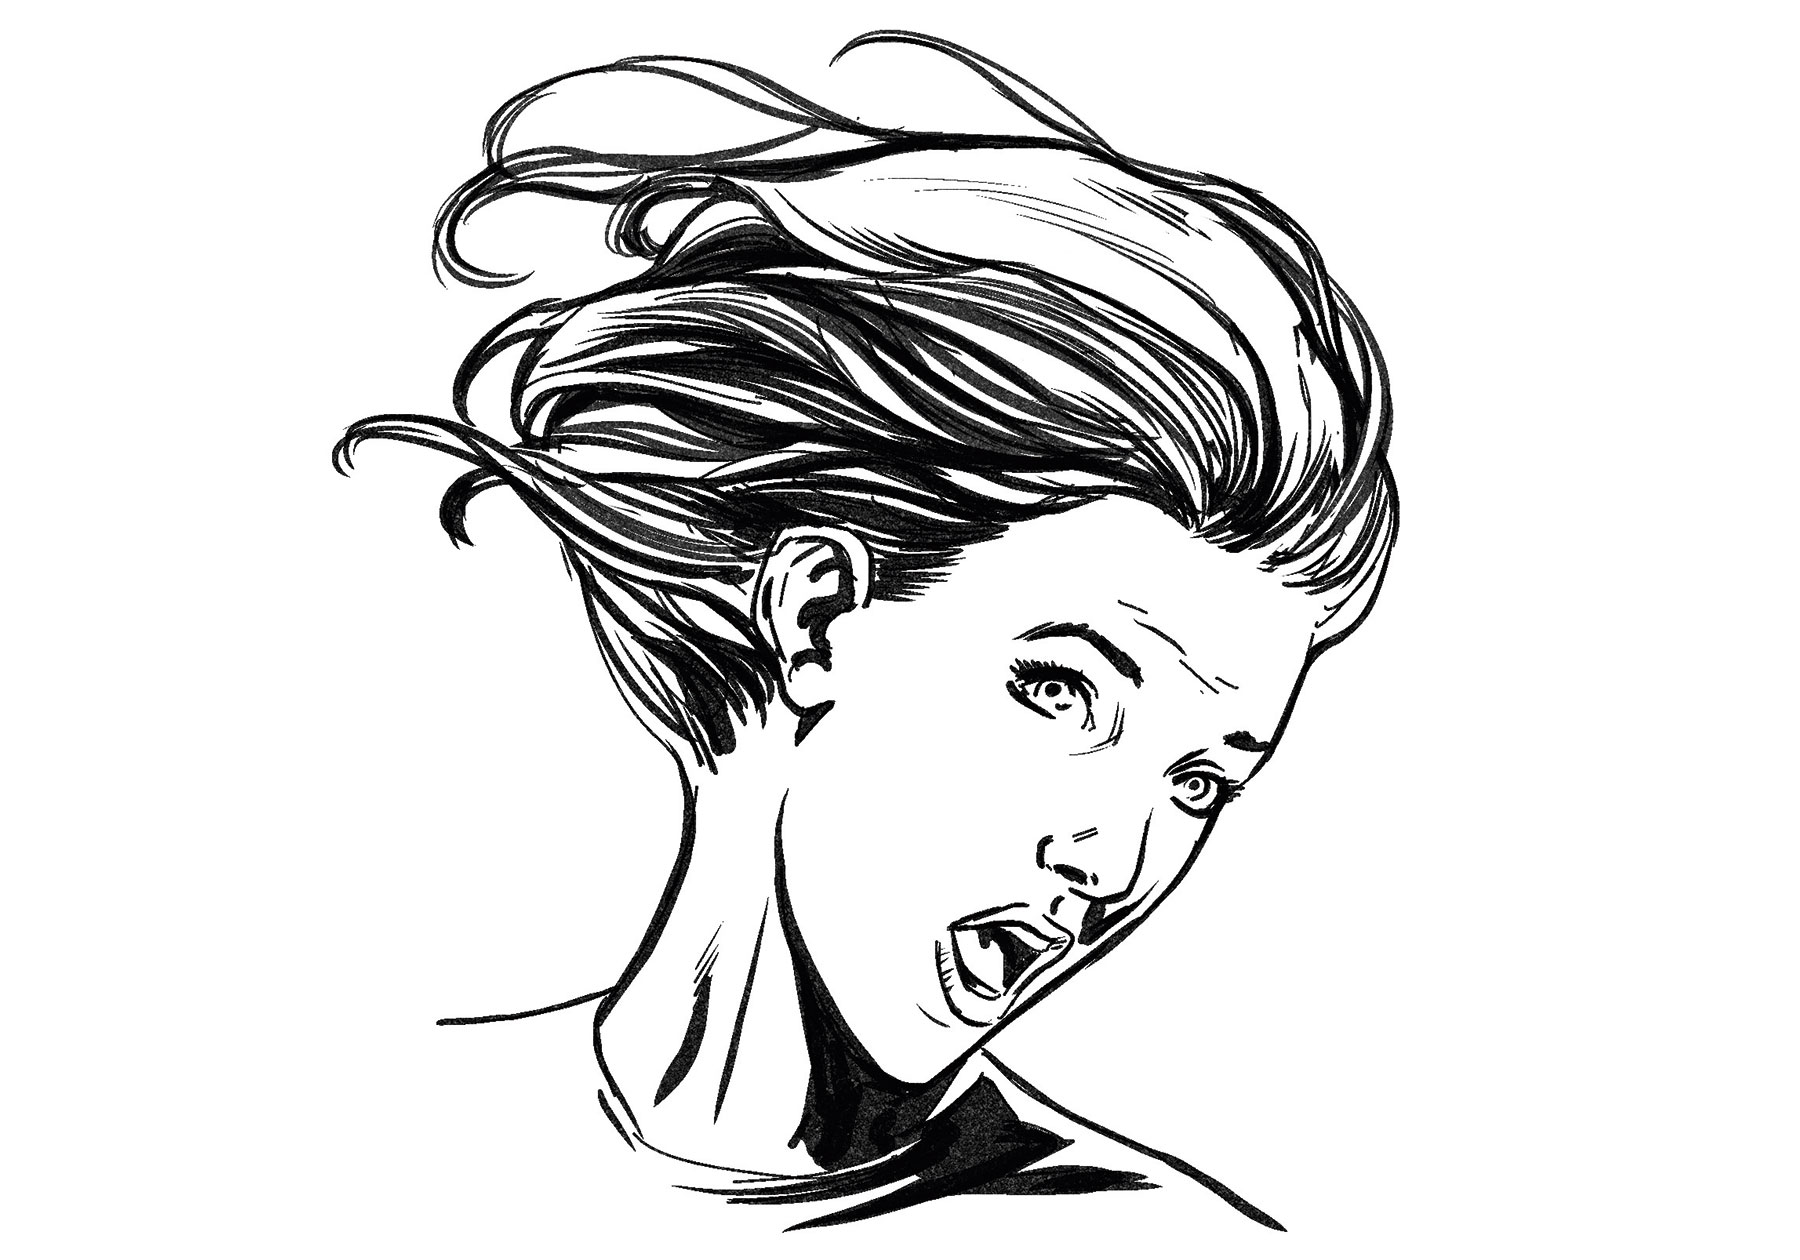 Sketch of a woman with her head twisted to one side